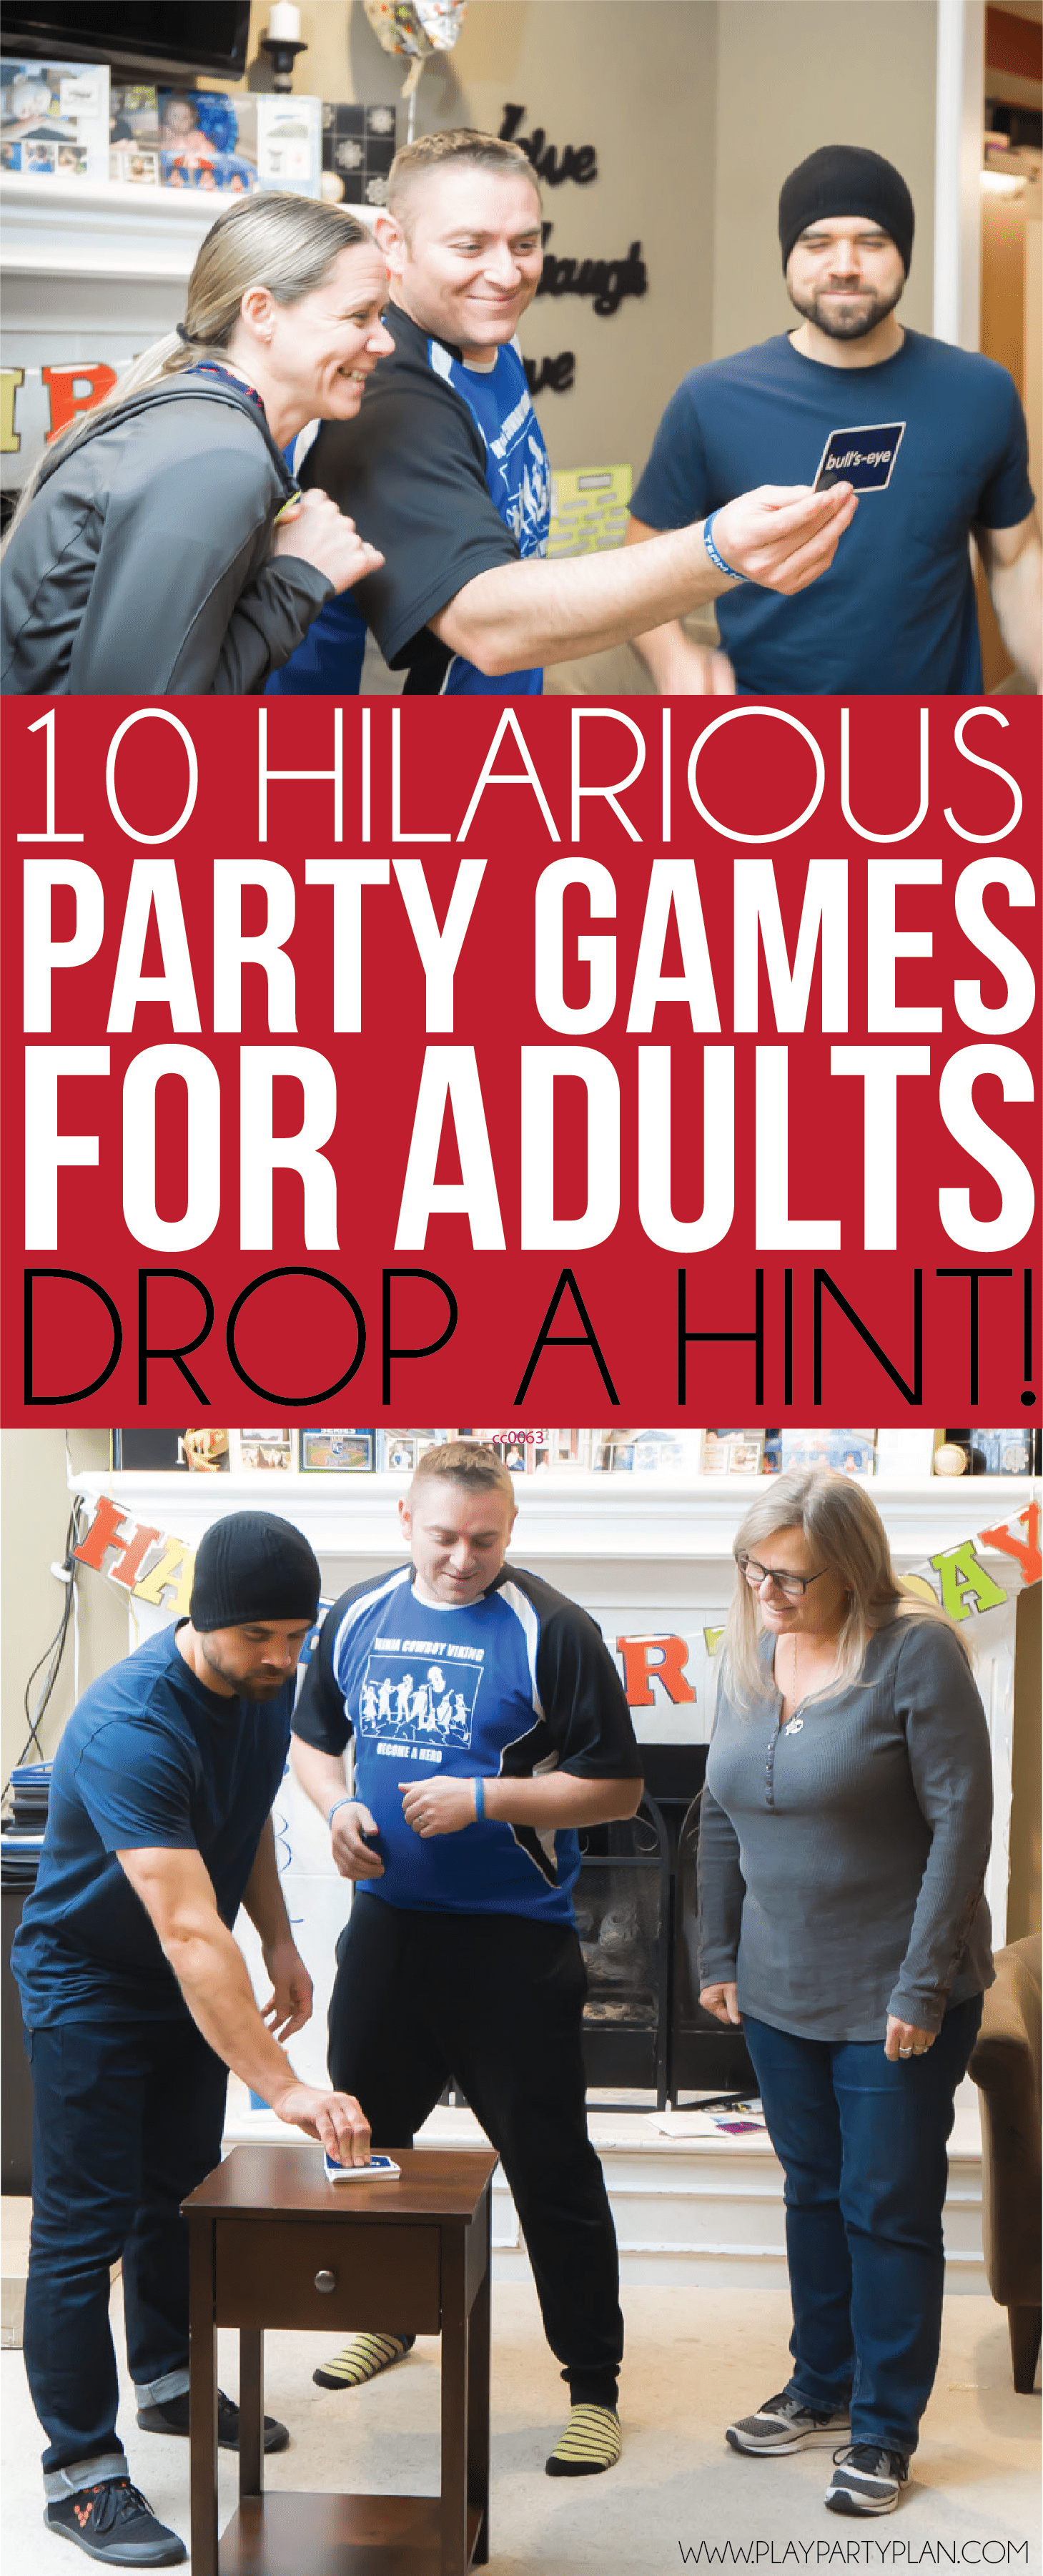 for adult games partys